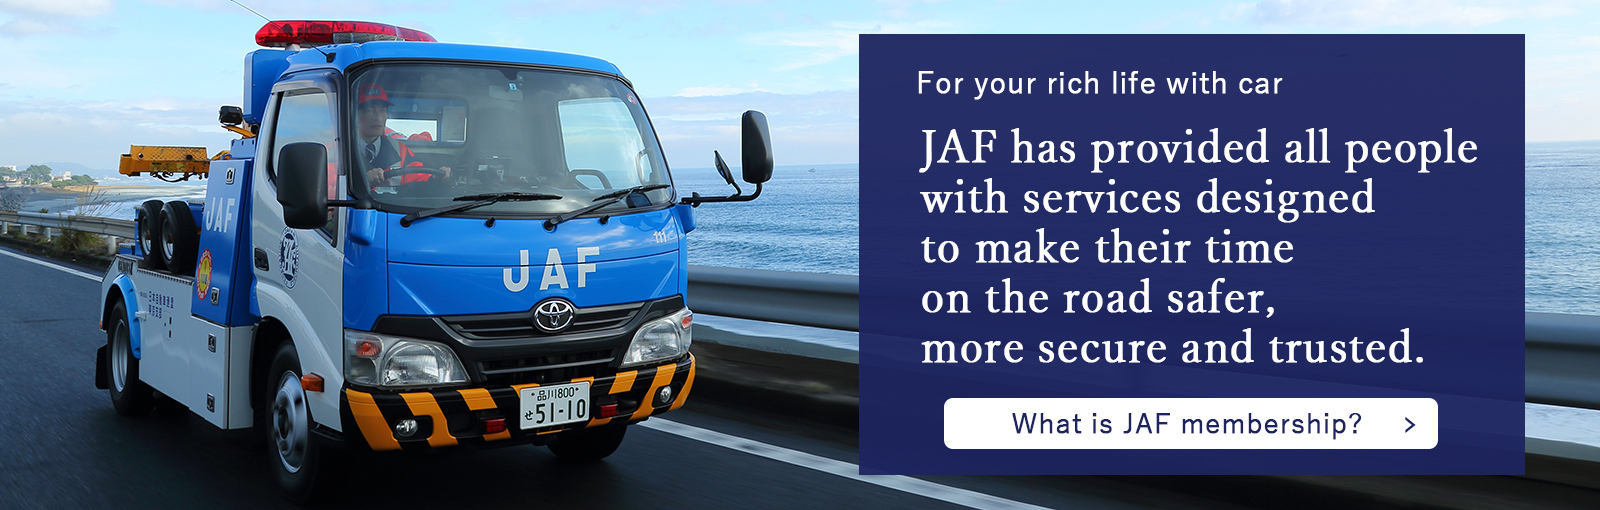 JAF has provided all people with services designed to make their time on the road sefer more secure and trusted